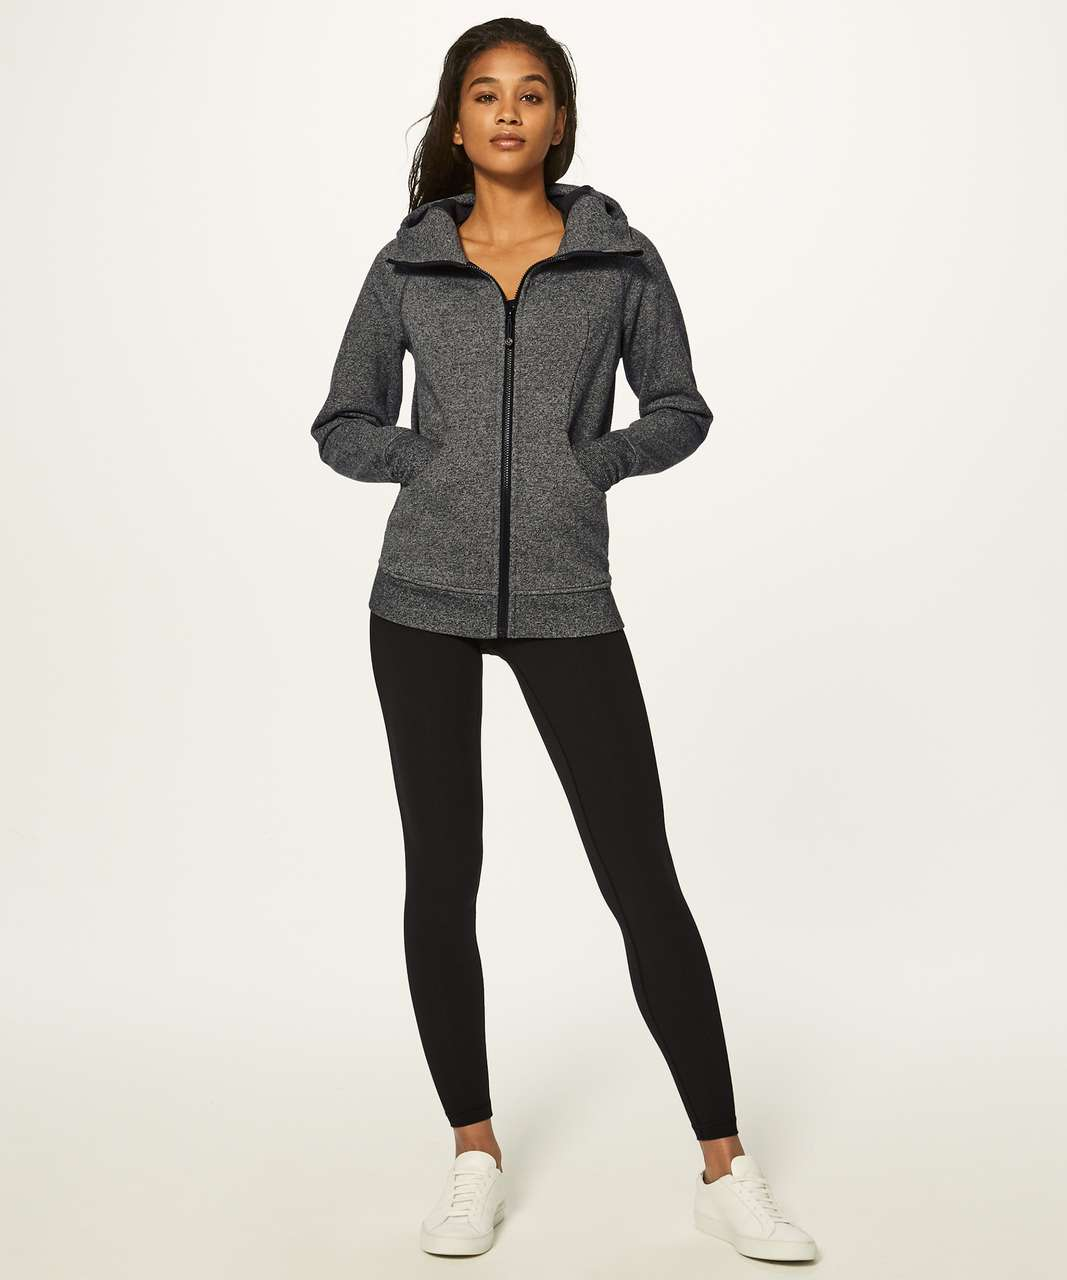 Lululemon Scuba Hoodie Classic Cotton Fleece - Heathered Speckled Black / Black